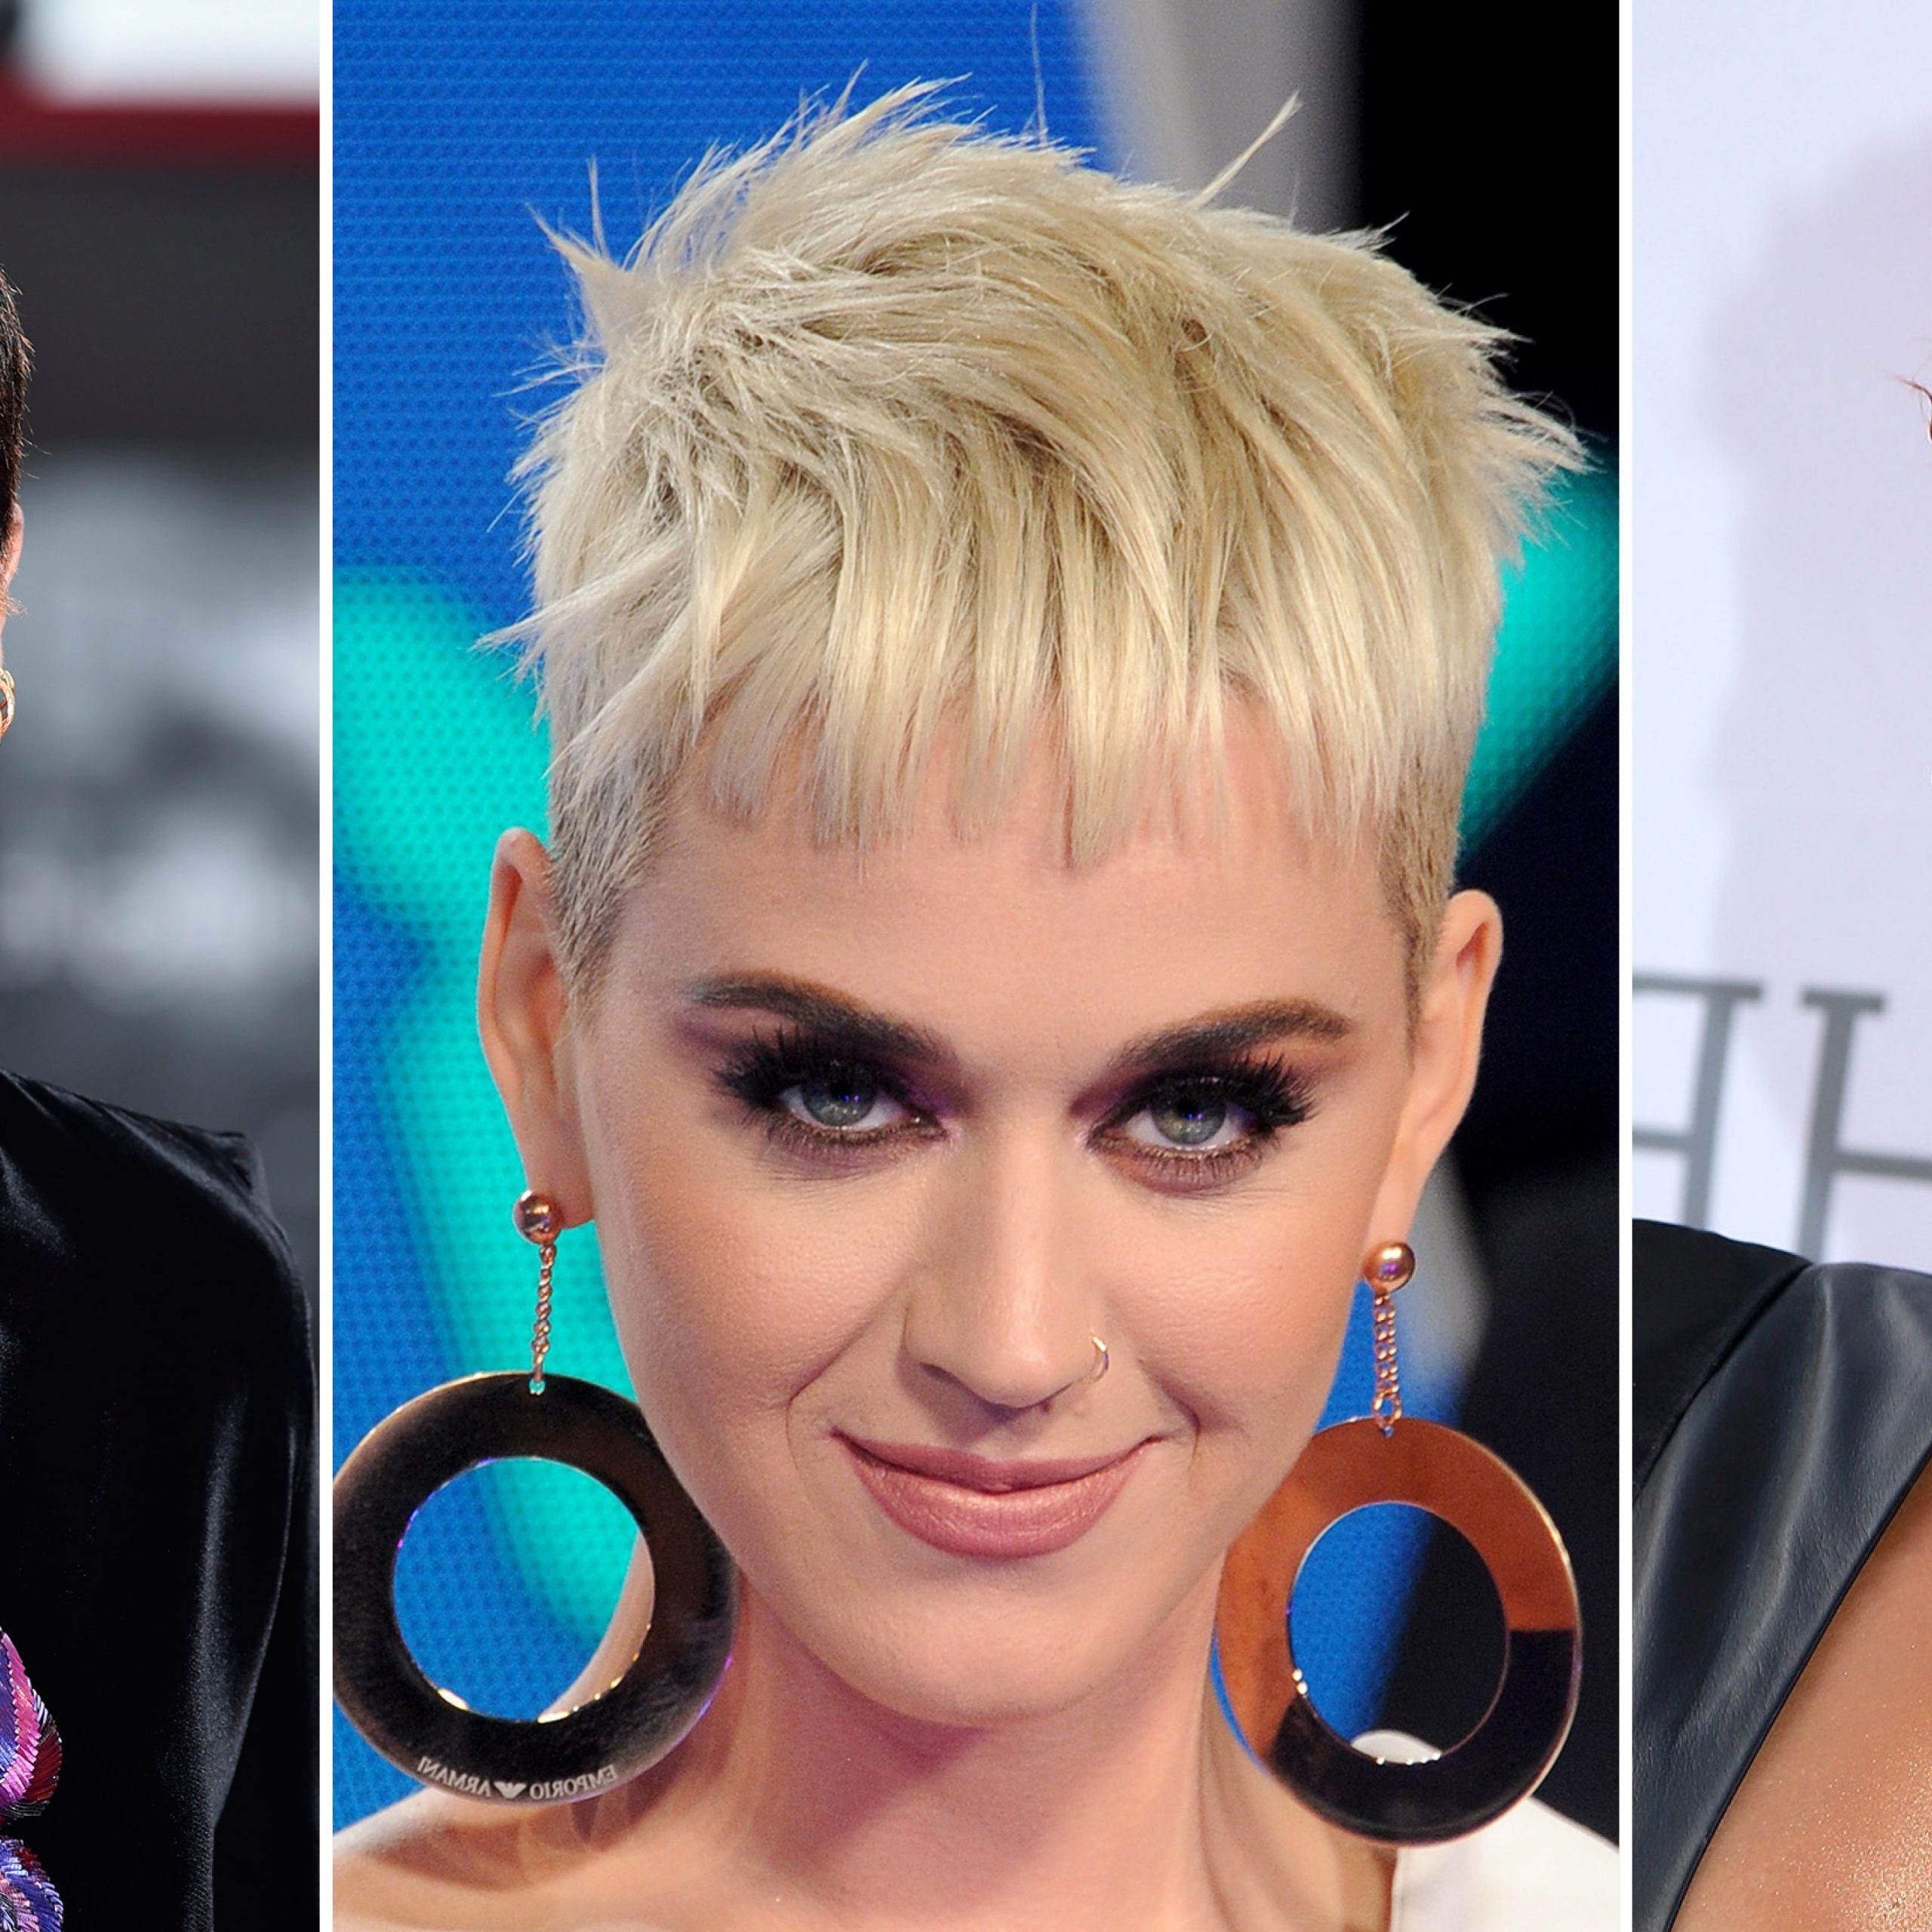 19 Best Pixie Cuts Of 2019 – Celebrity Pixie Hairstyle Ideas Pertaining To Current Gorgeous Toasted Coconut Shag Haircuts (View 18 of 20)